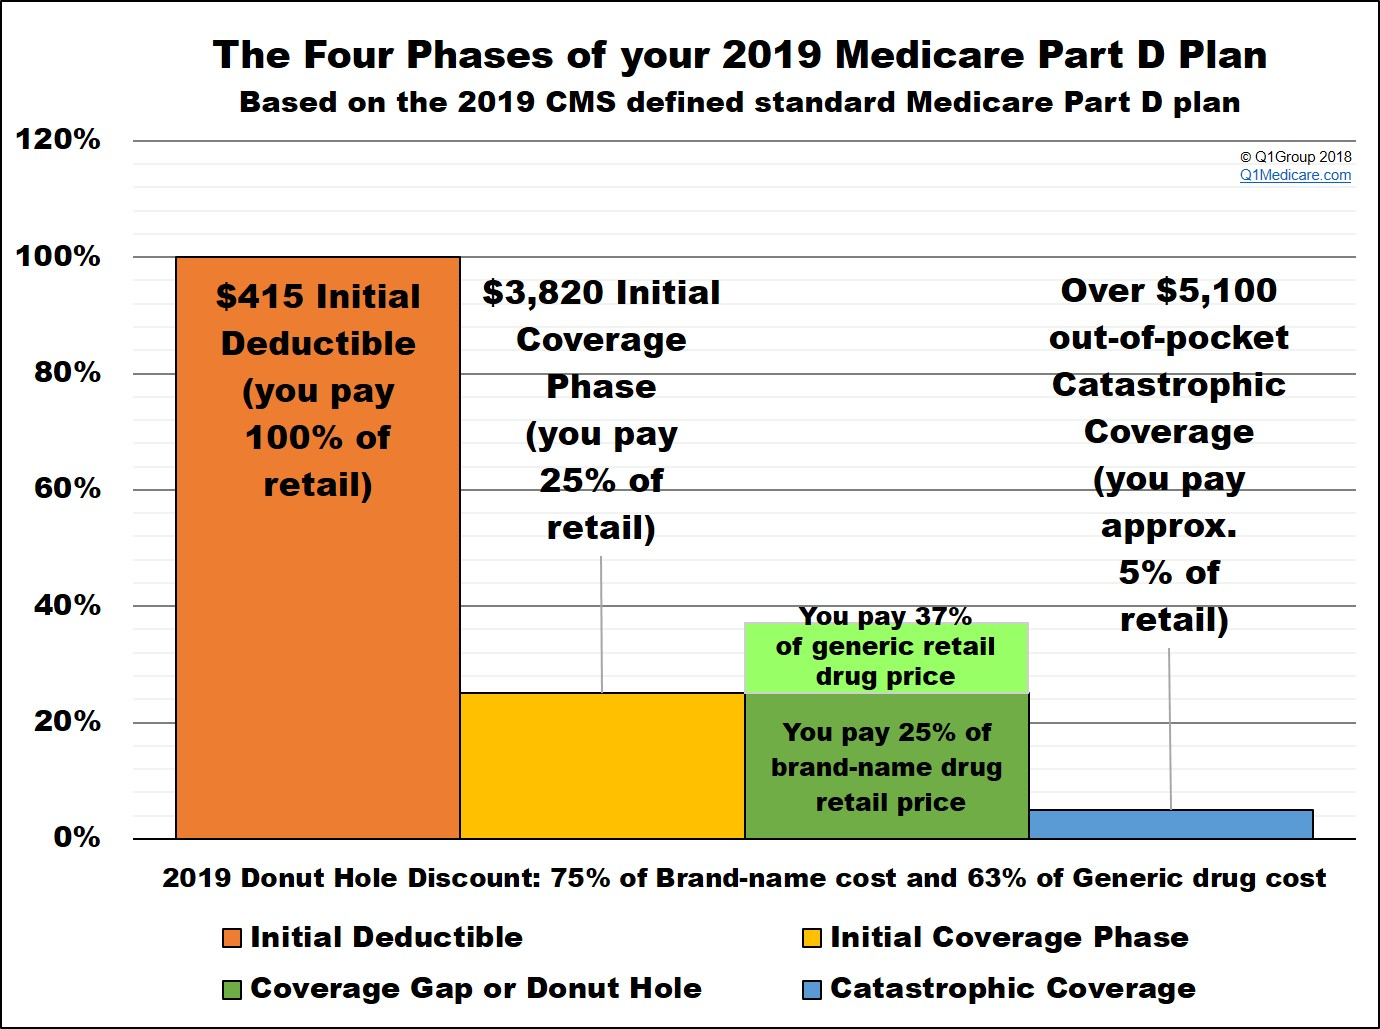 What Is The 2019 Standard Initial Coverage Limit And How